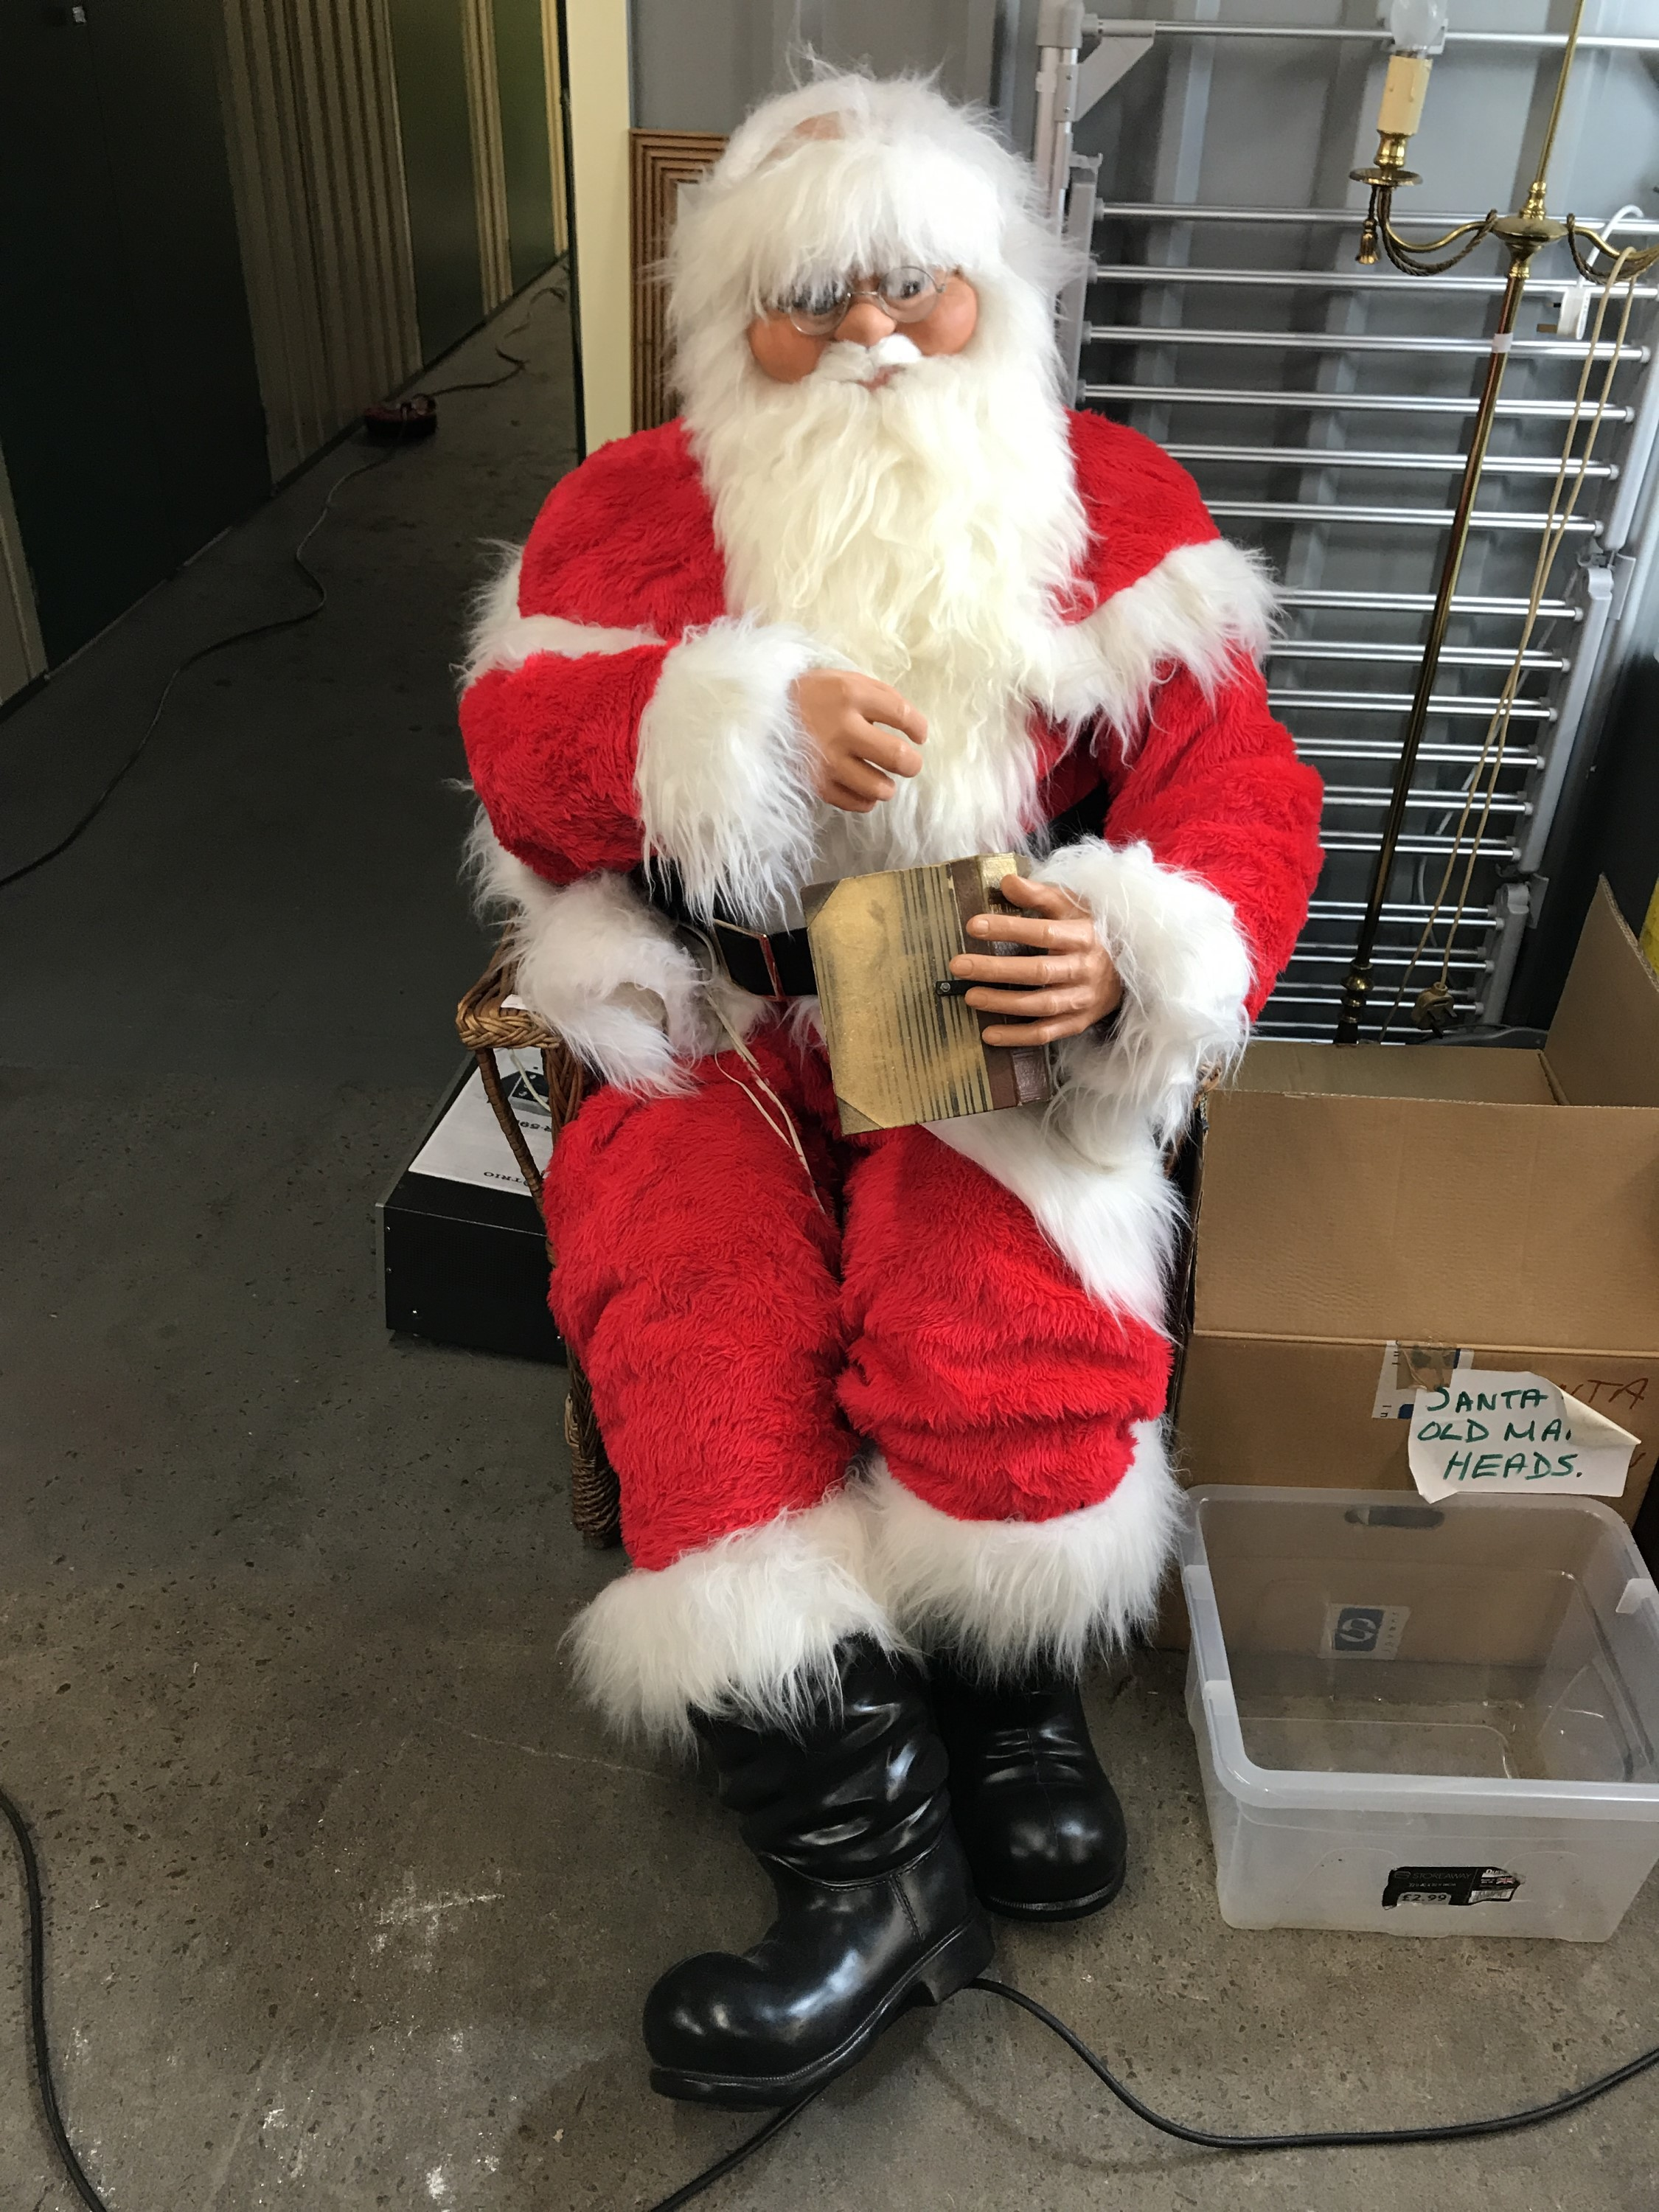 Lot 13 - A life size animated / animatronic figure, with Santa Claus and one other costume, manufactured by H